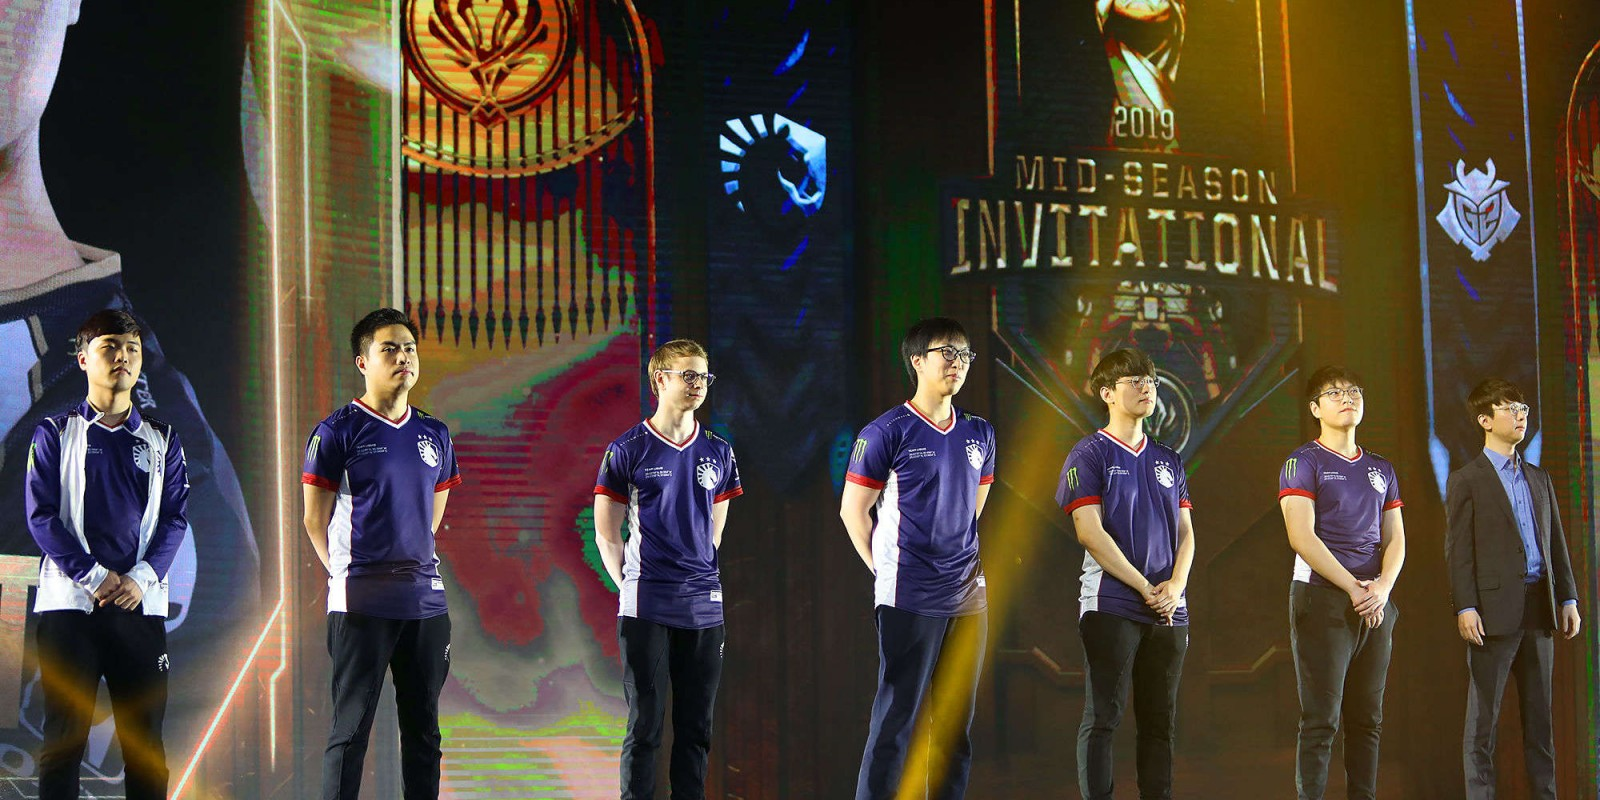 Photos of Team Liquid LoL as they play in Vietnam for the Mid Season Invitational. Team Liquid represented North America in this international competition for League of Legends and placed 2nd after upsetting the reigning world champions, but losing to G2